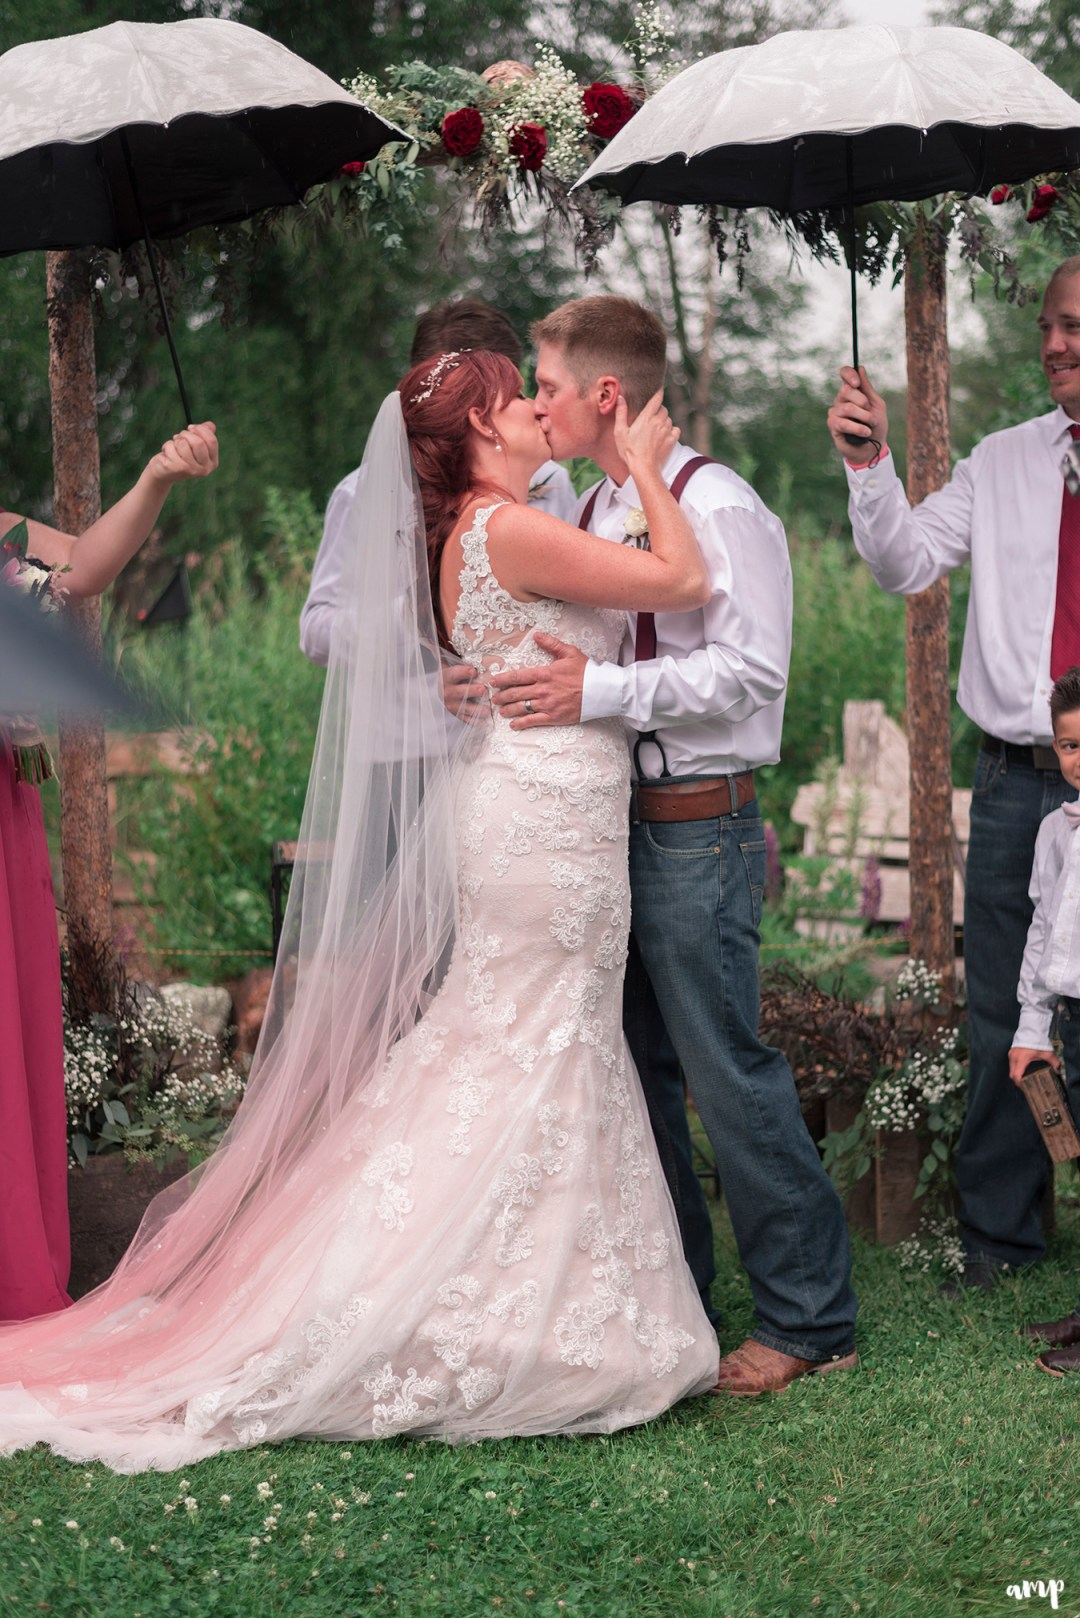 Bride and groom's first kiss in the rain